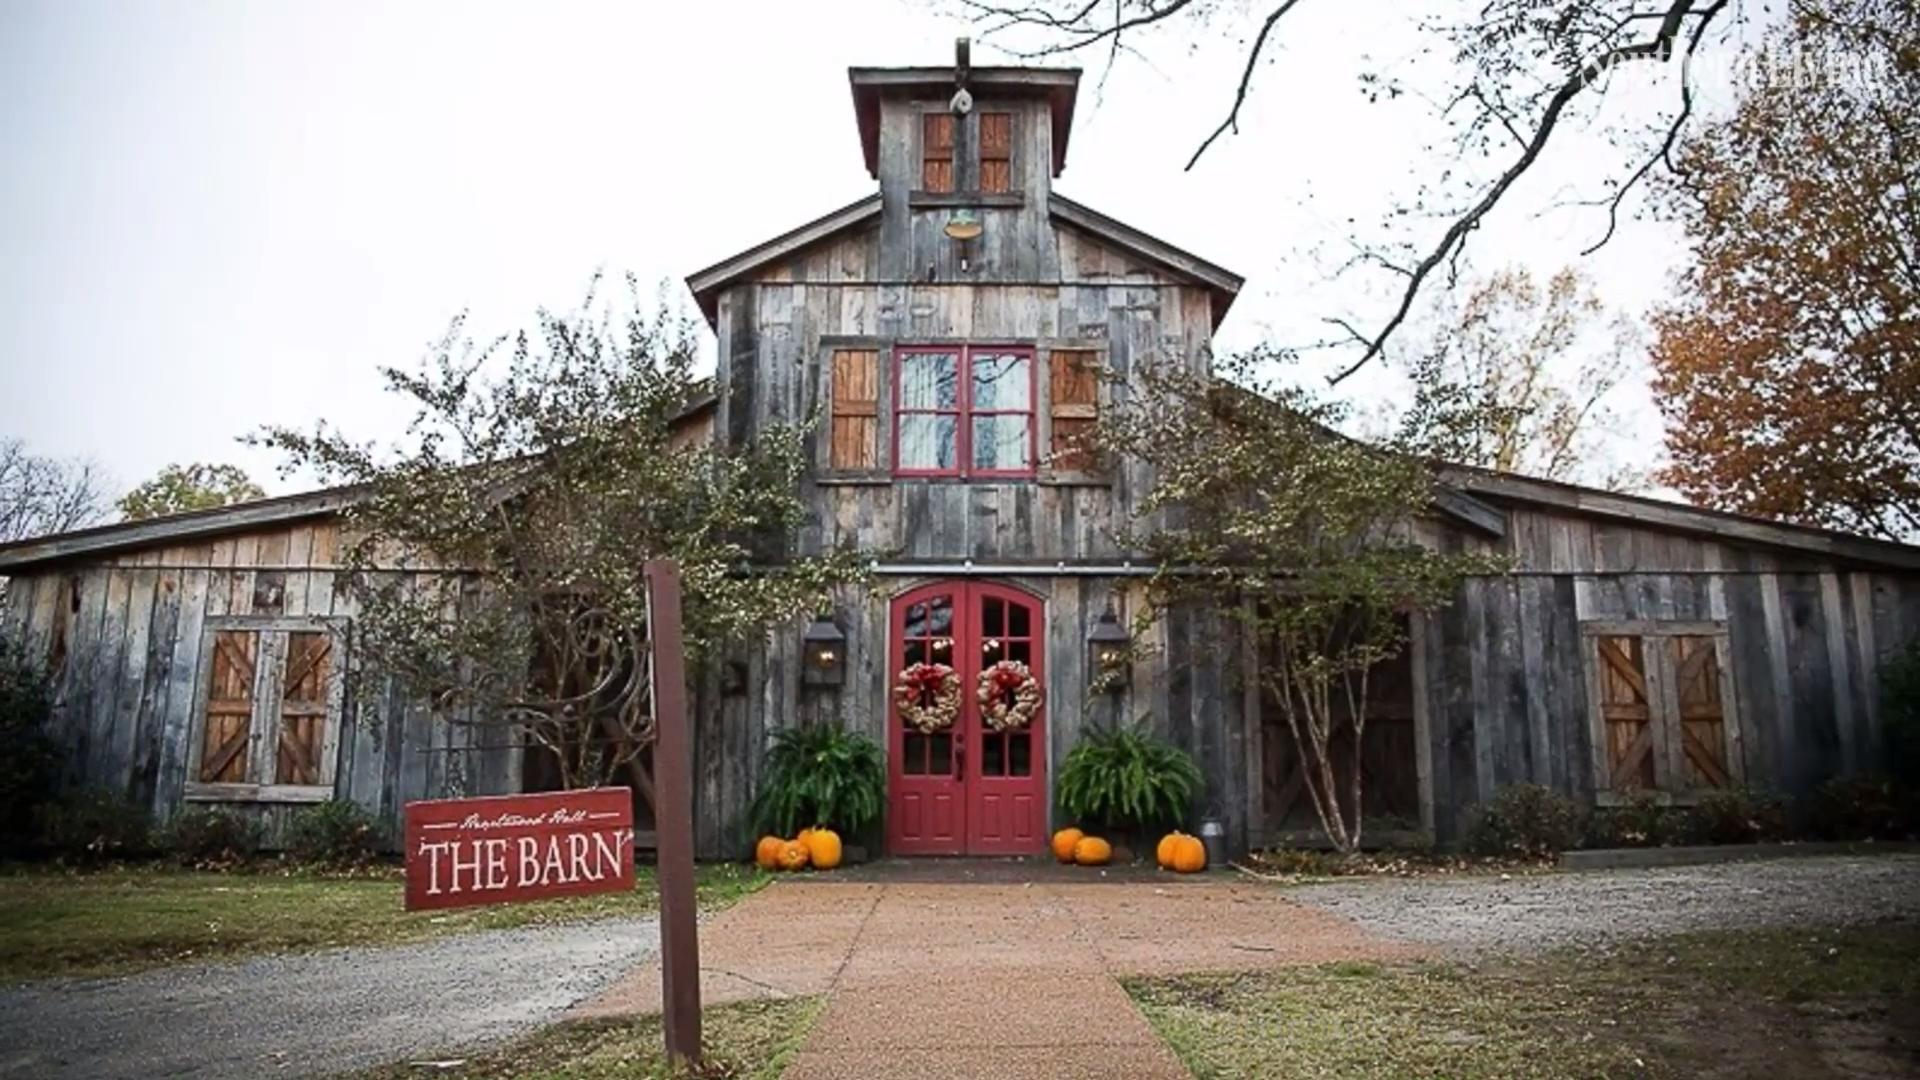 Seeking the Perfect Rustic Wedding Venue? You Might Fall in Love With These Barns